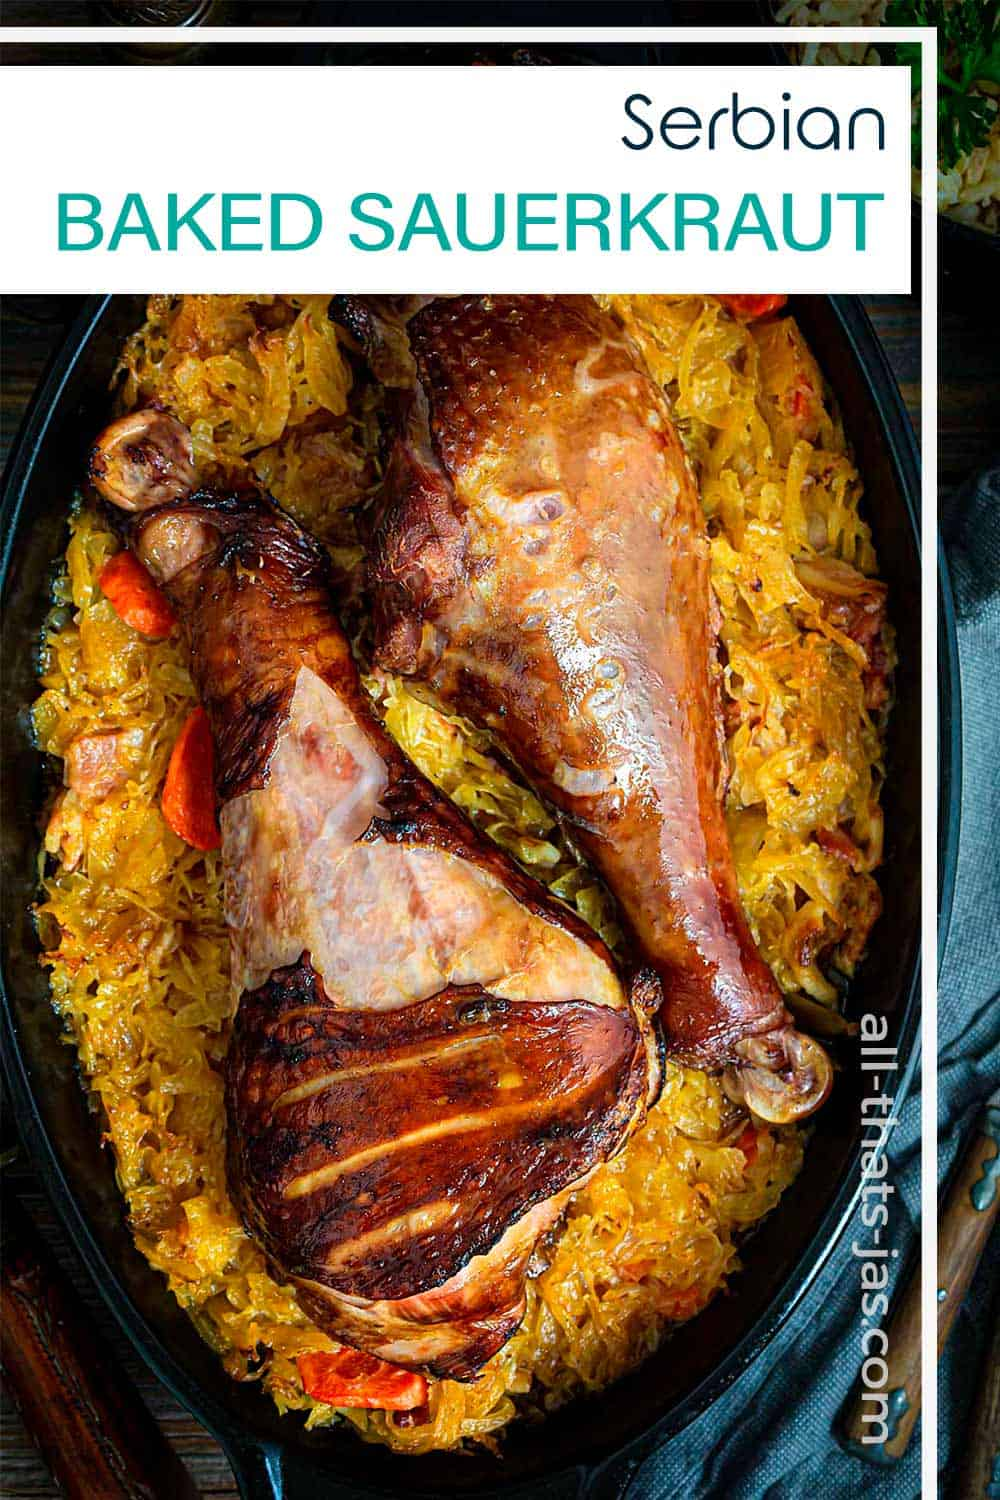 A close up of food in baking dish with turkey legs, cabbage, and with text